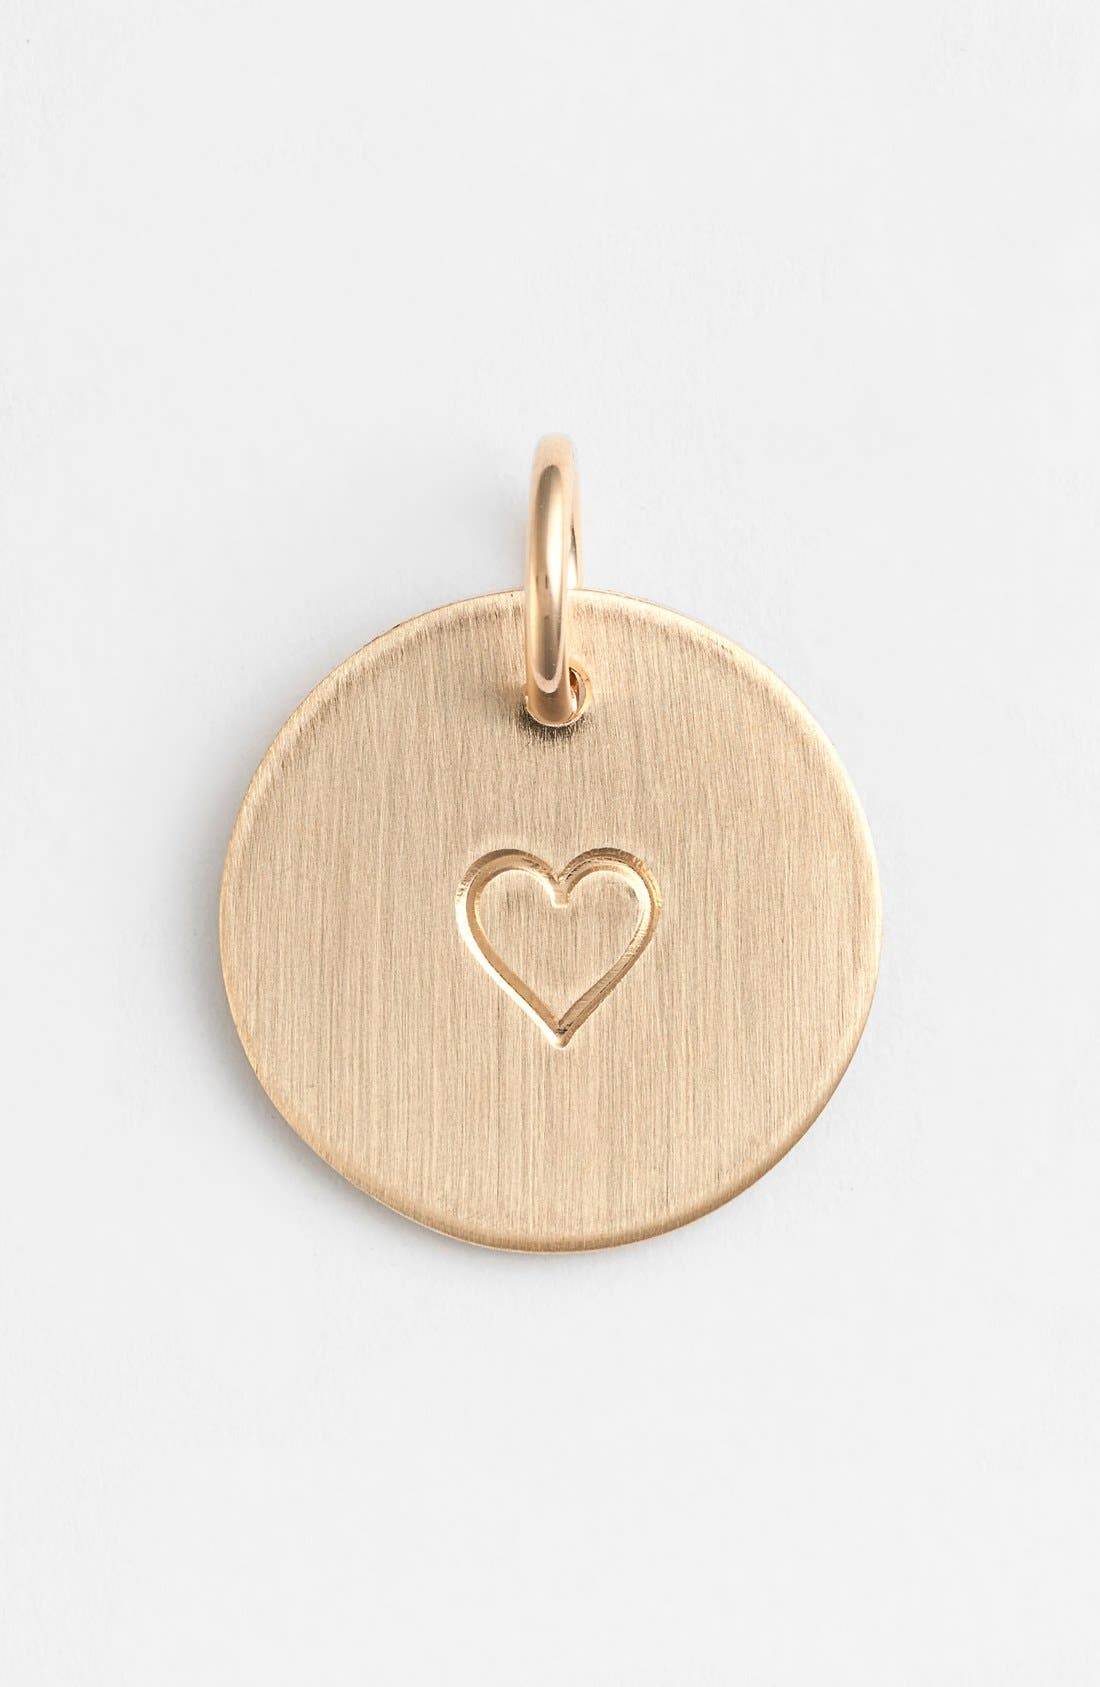 Heart Stamp Charm,                         Main,                         color, 14K Gold Fill Heart